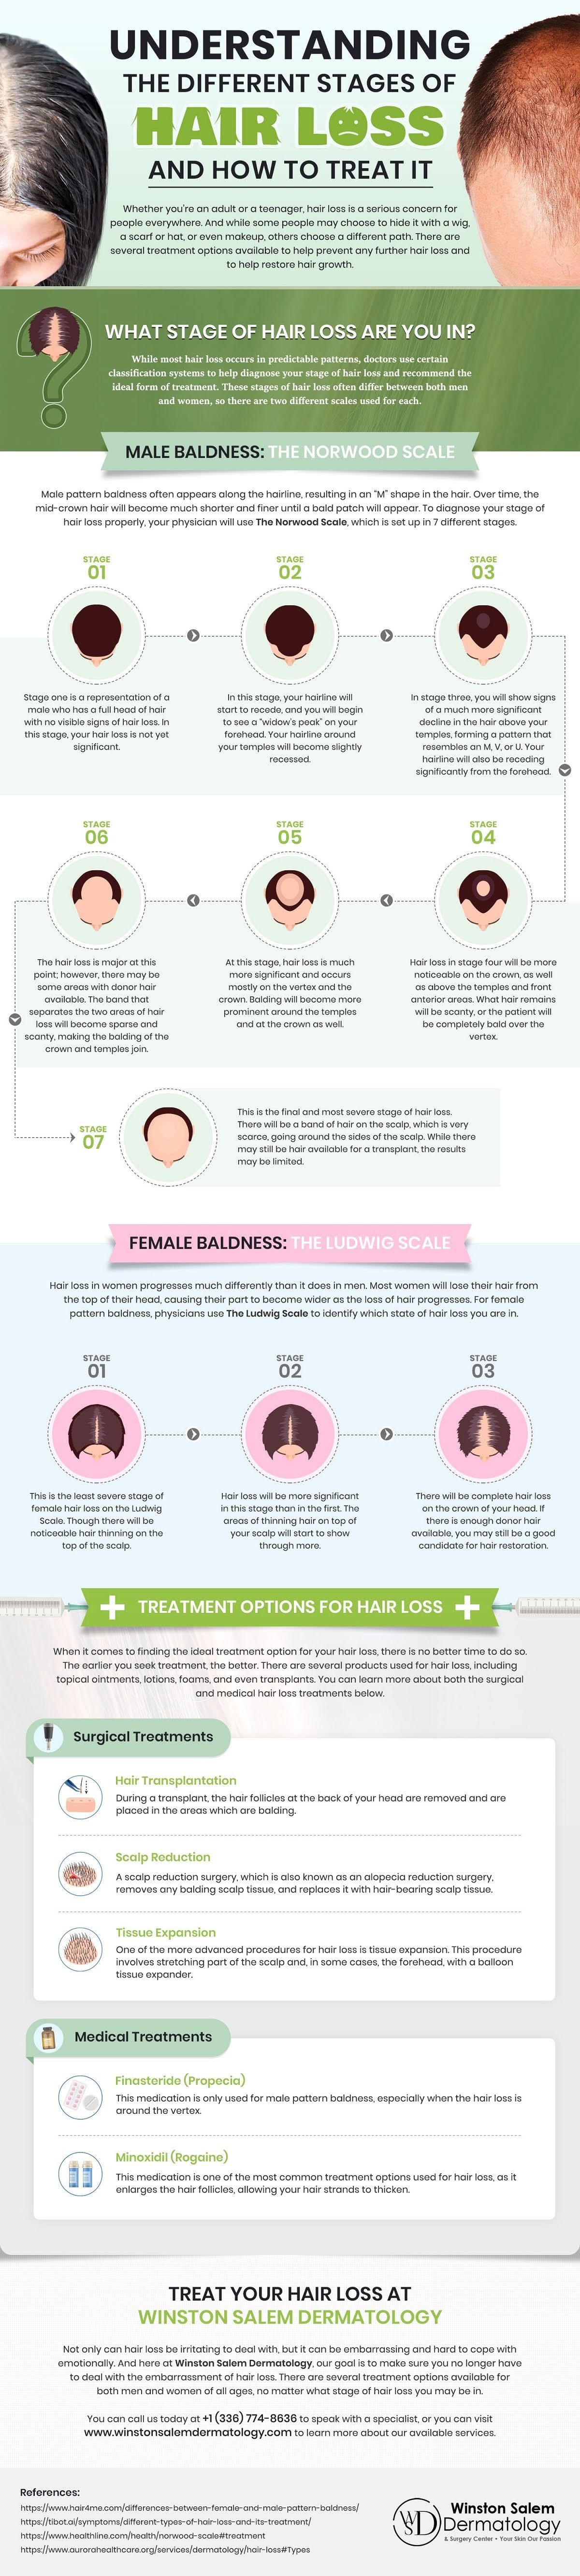 understanding-the-different-stages-of-hair-loss-and-how-to-treat-it-infographic